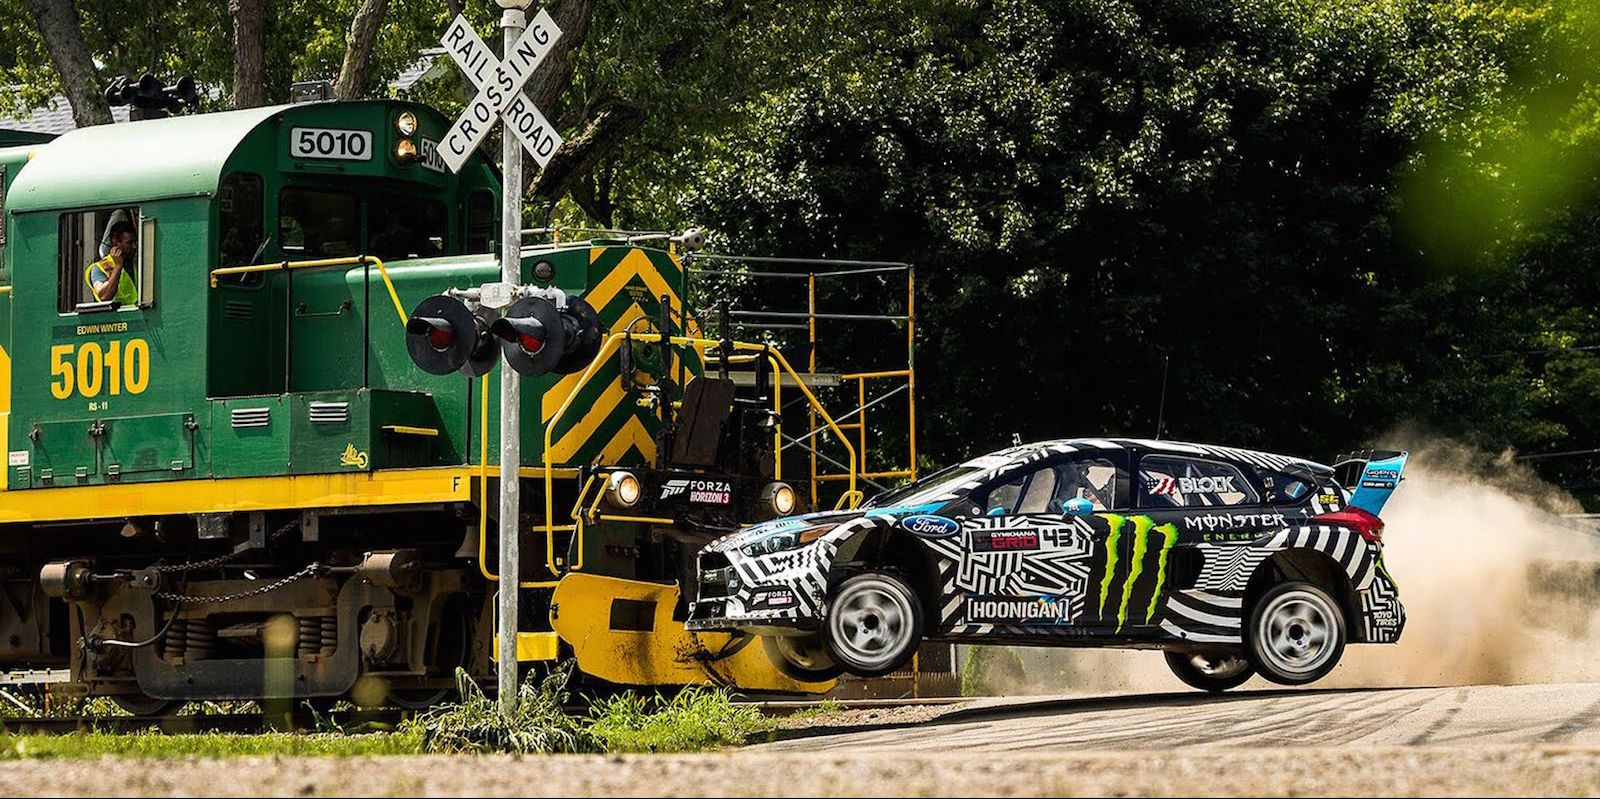 Gymkhana Nine train crossing stunt